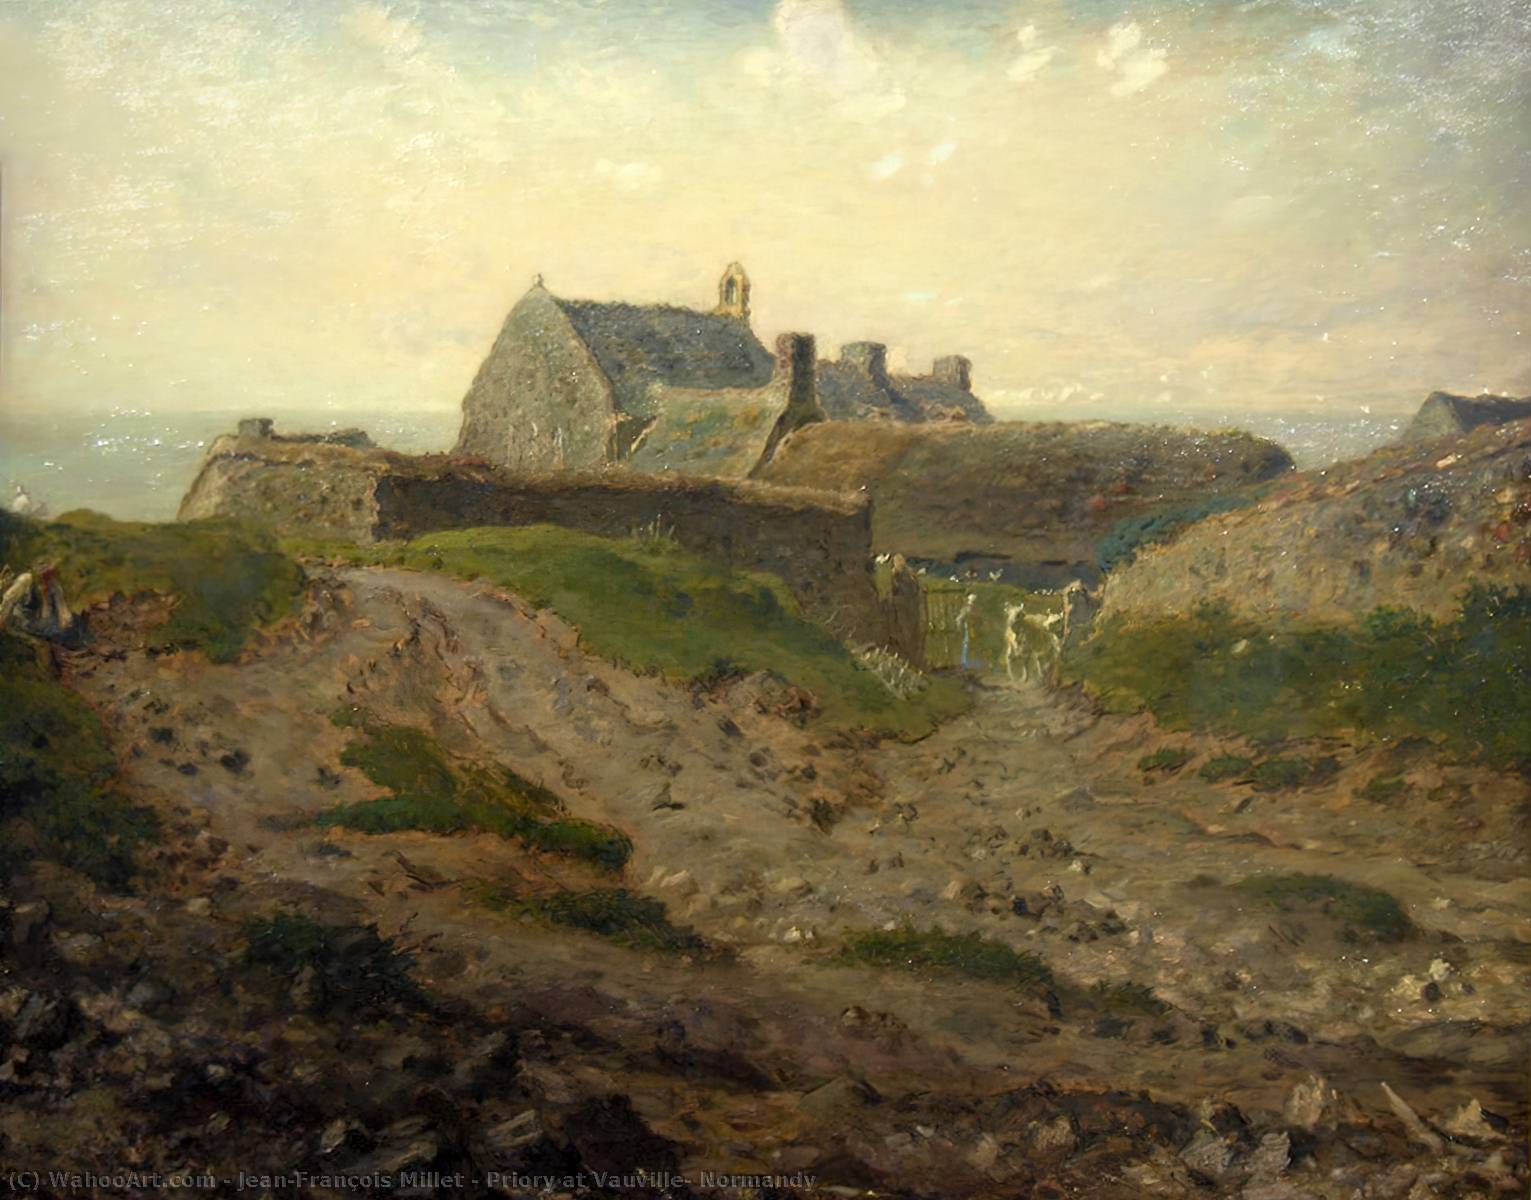 Priory at Vauville, Normandy by Jean-François Millet (1814-1875, France) | Famous Paintings Reproductions | WahooArt.com